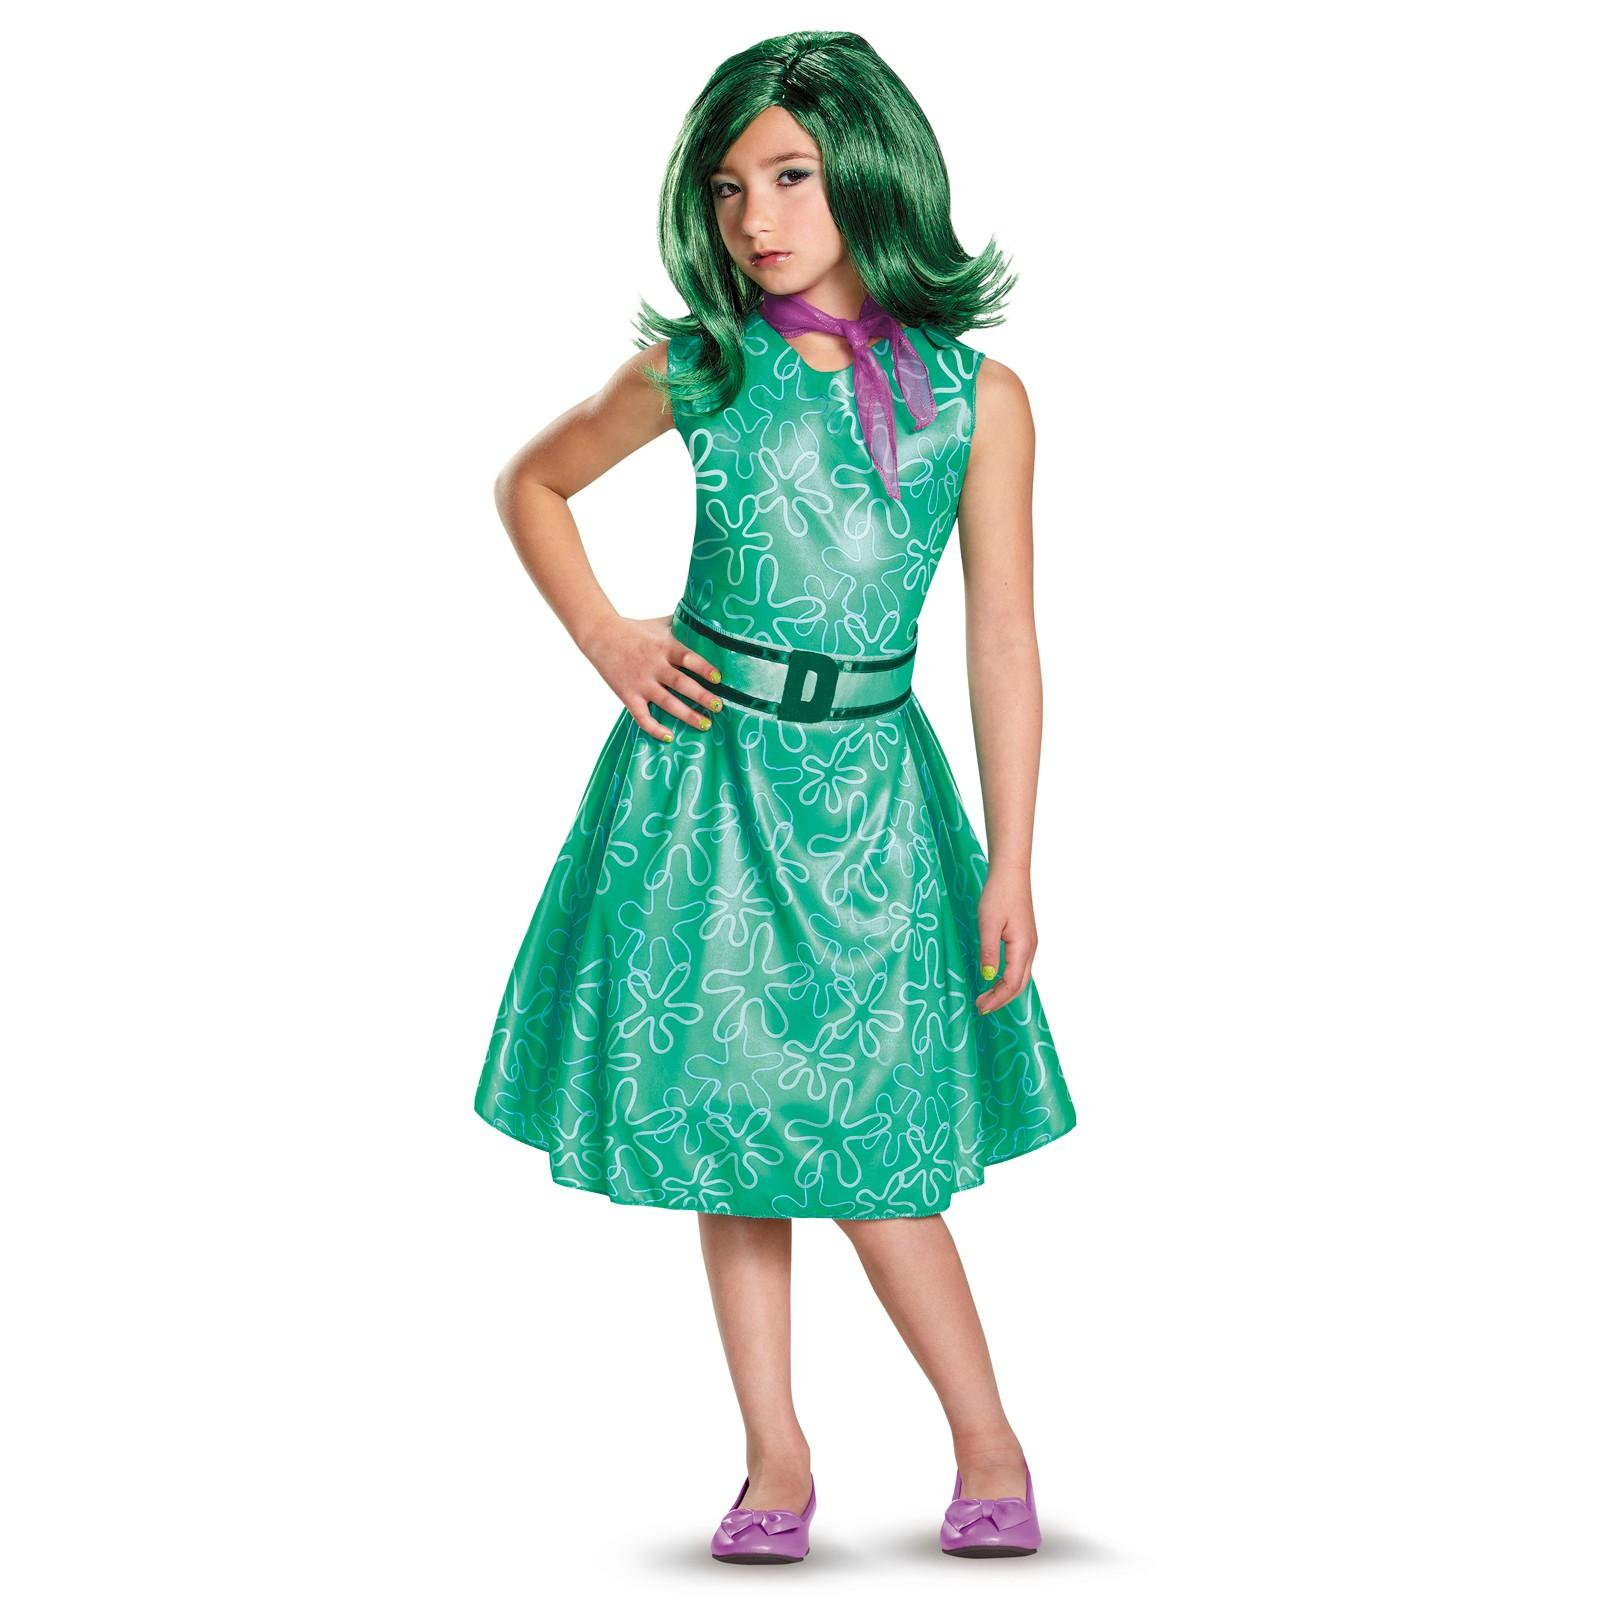 Disney Inside Out Disgust Costume, Top 10 Kids Costumes of 2015